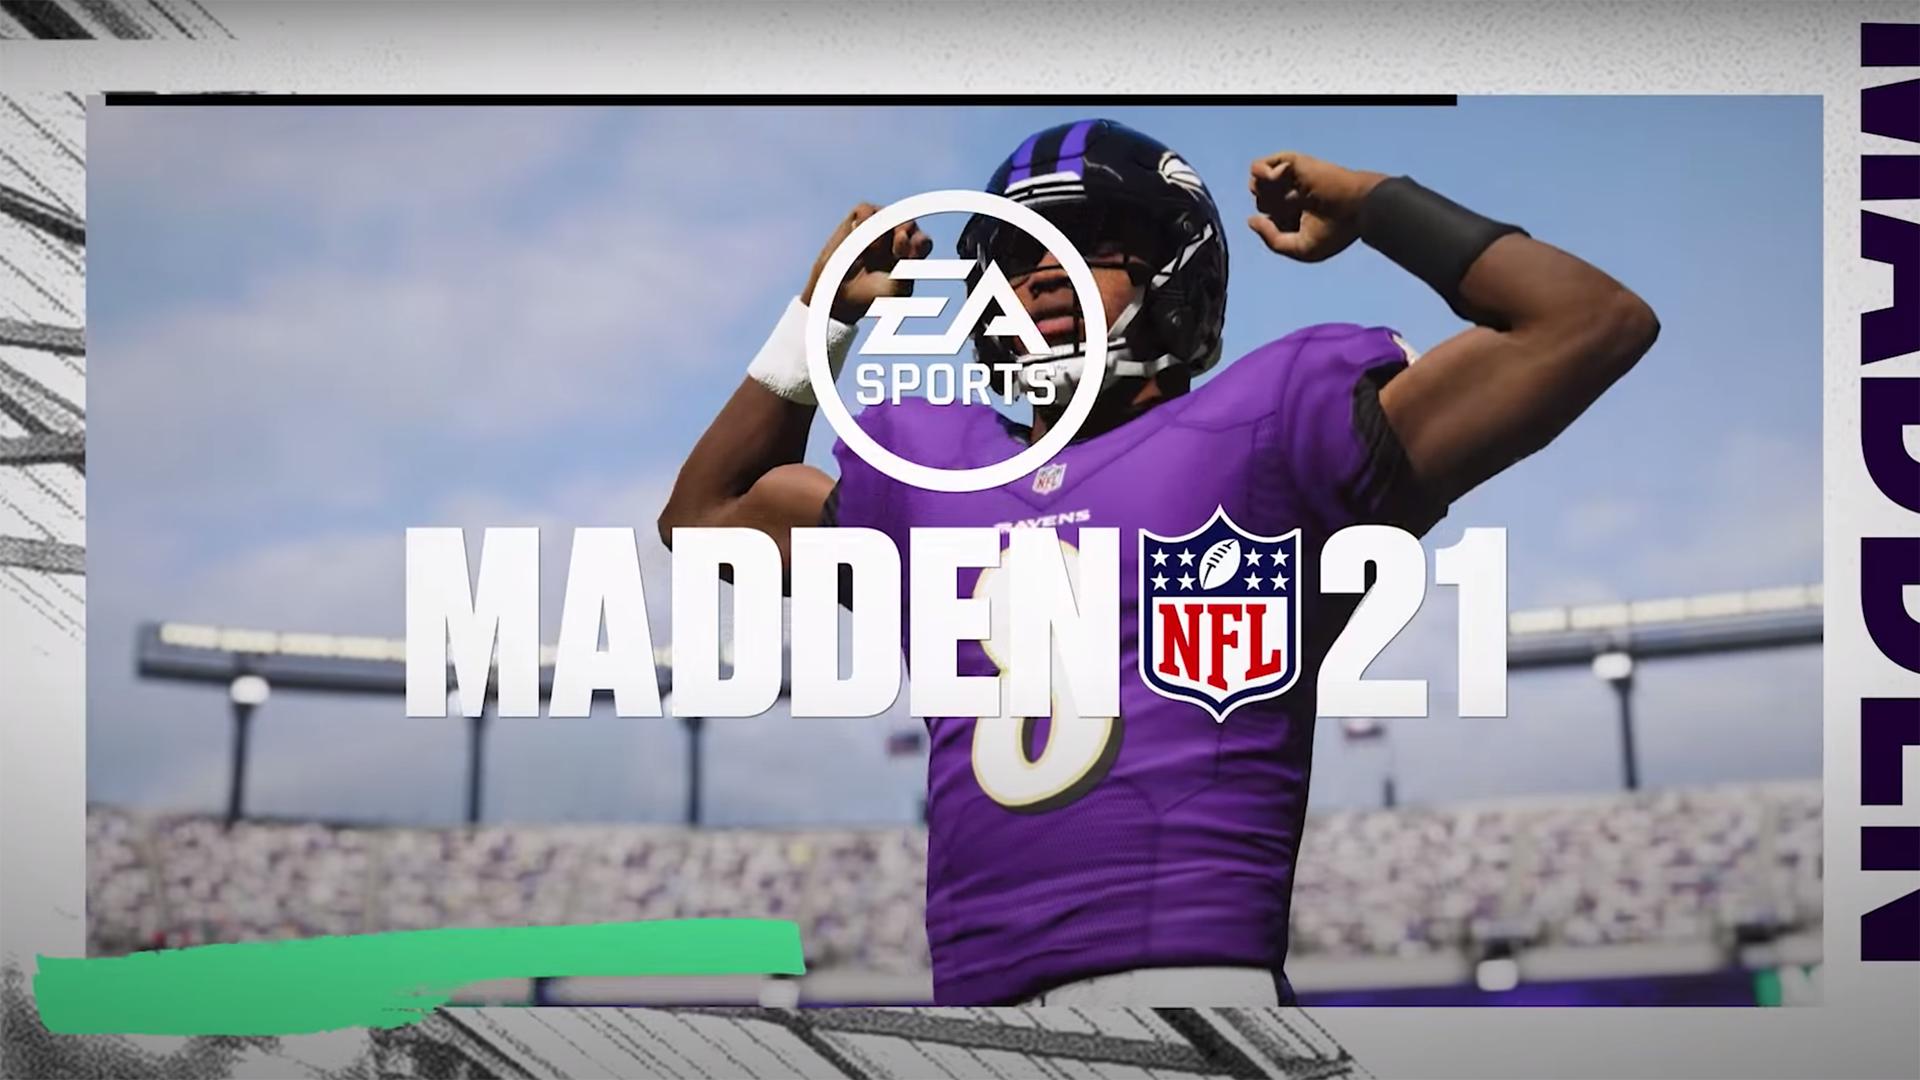 Espn To Reveal Madden 21 Player Ratings Starting July 13 Rookie Qb Ratings Out Now Nfl New Nfl News Madden Nfl Nfl